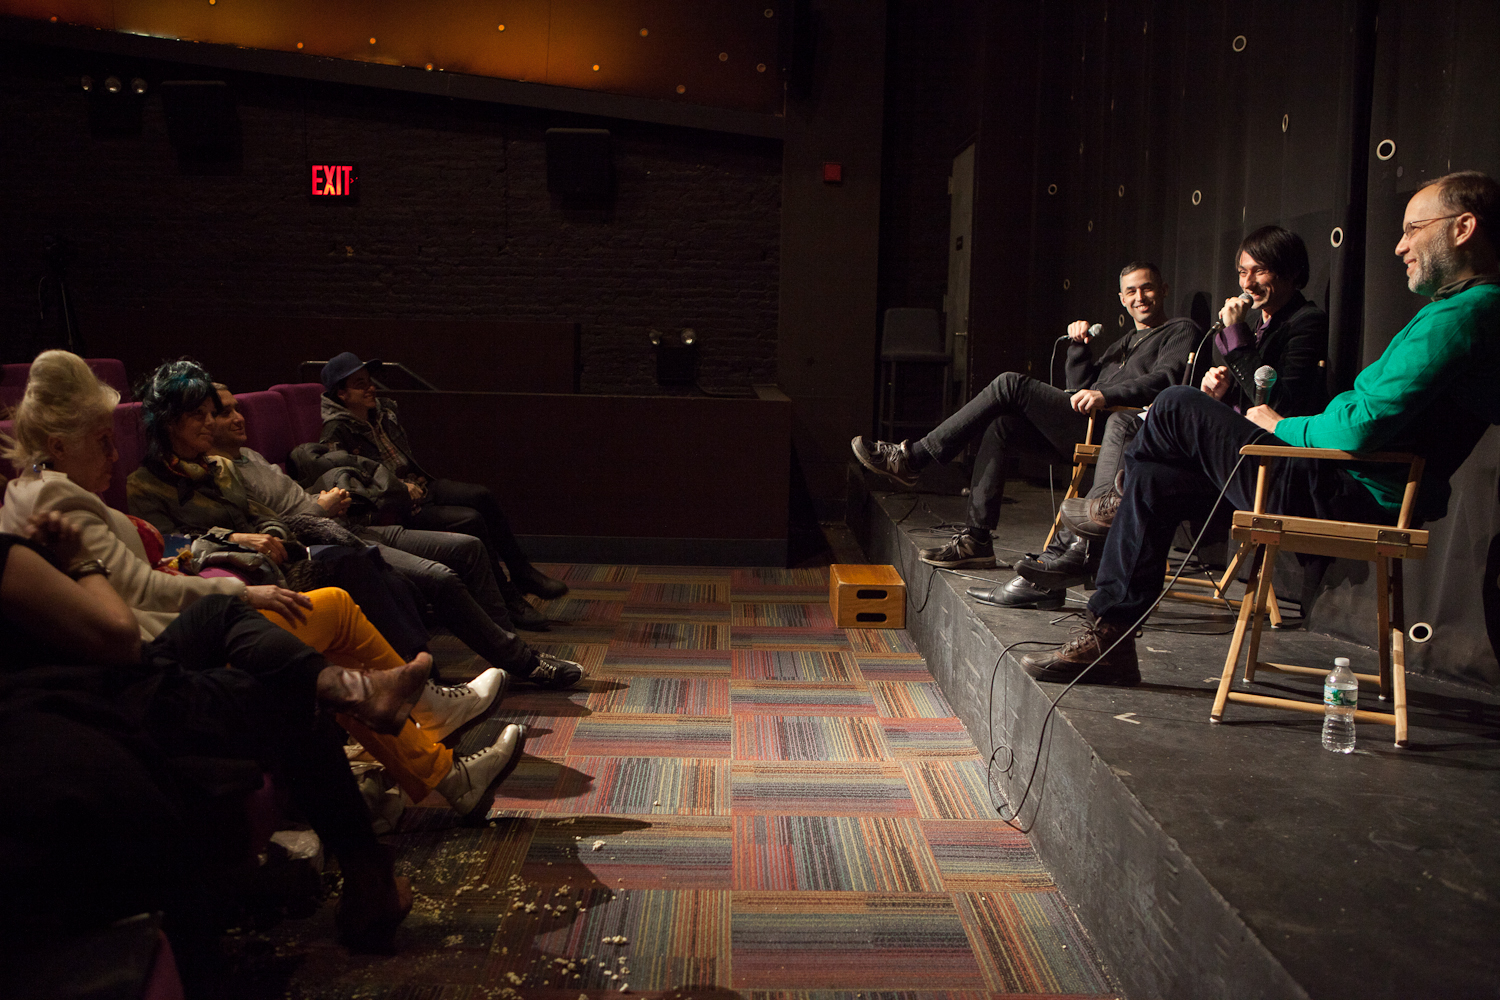 Queer|Art|Film co-curators Adam Baran and Ira Sachs on stage with presenter Joseph Keckler at the March 2015 screening of  Batman Returns . (Photo by Ryan Morris)